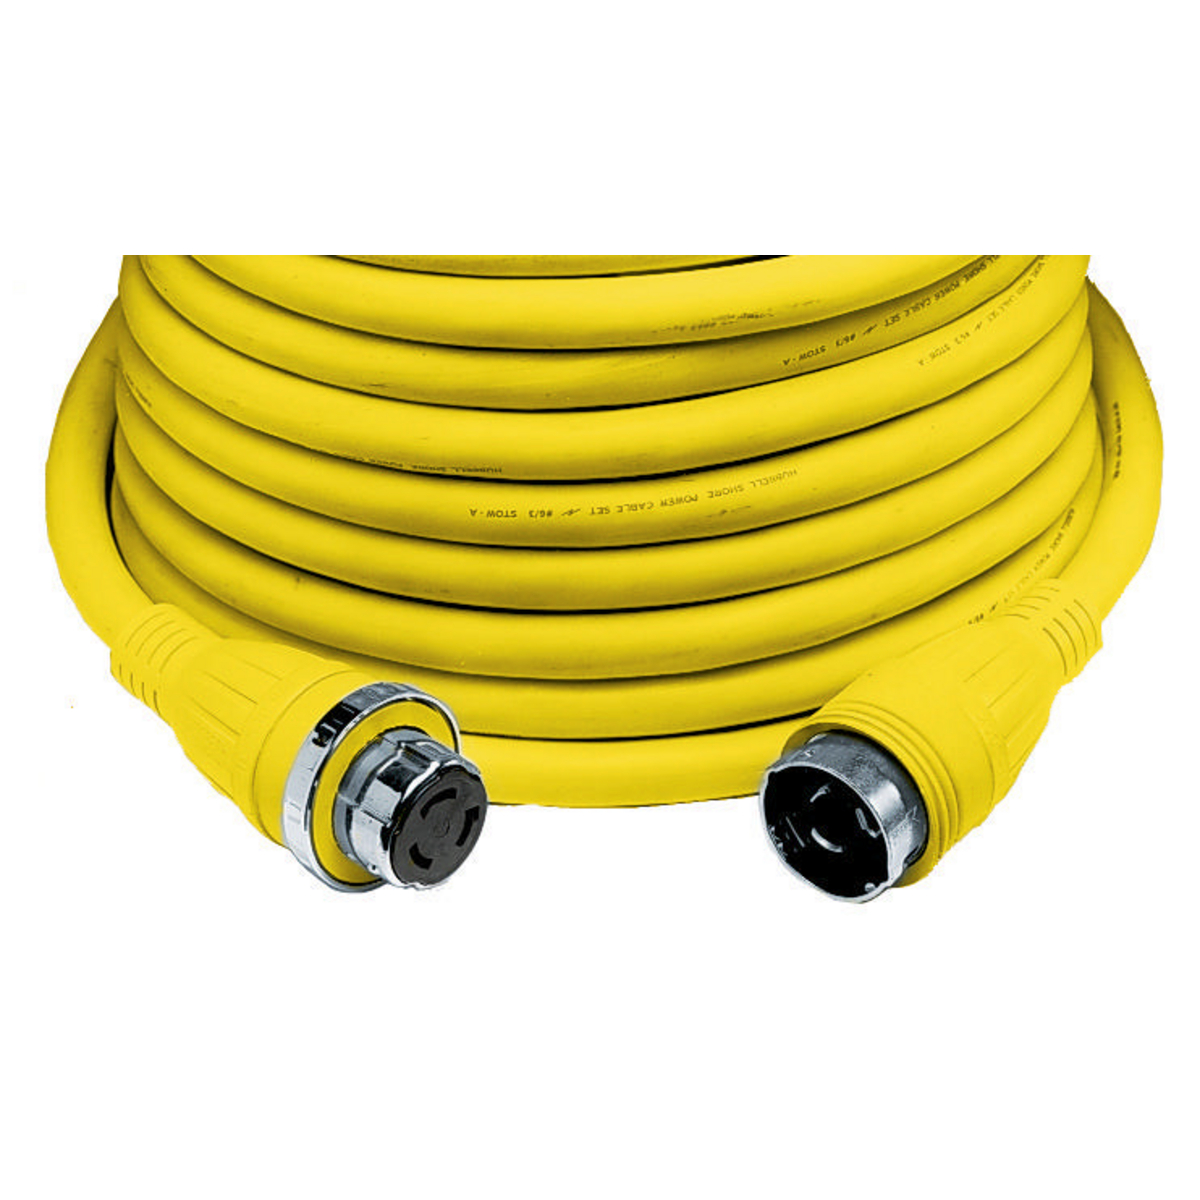 Hubbell HBL61CM53 Marine CABLE, 50', 50A 125V, YL